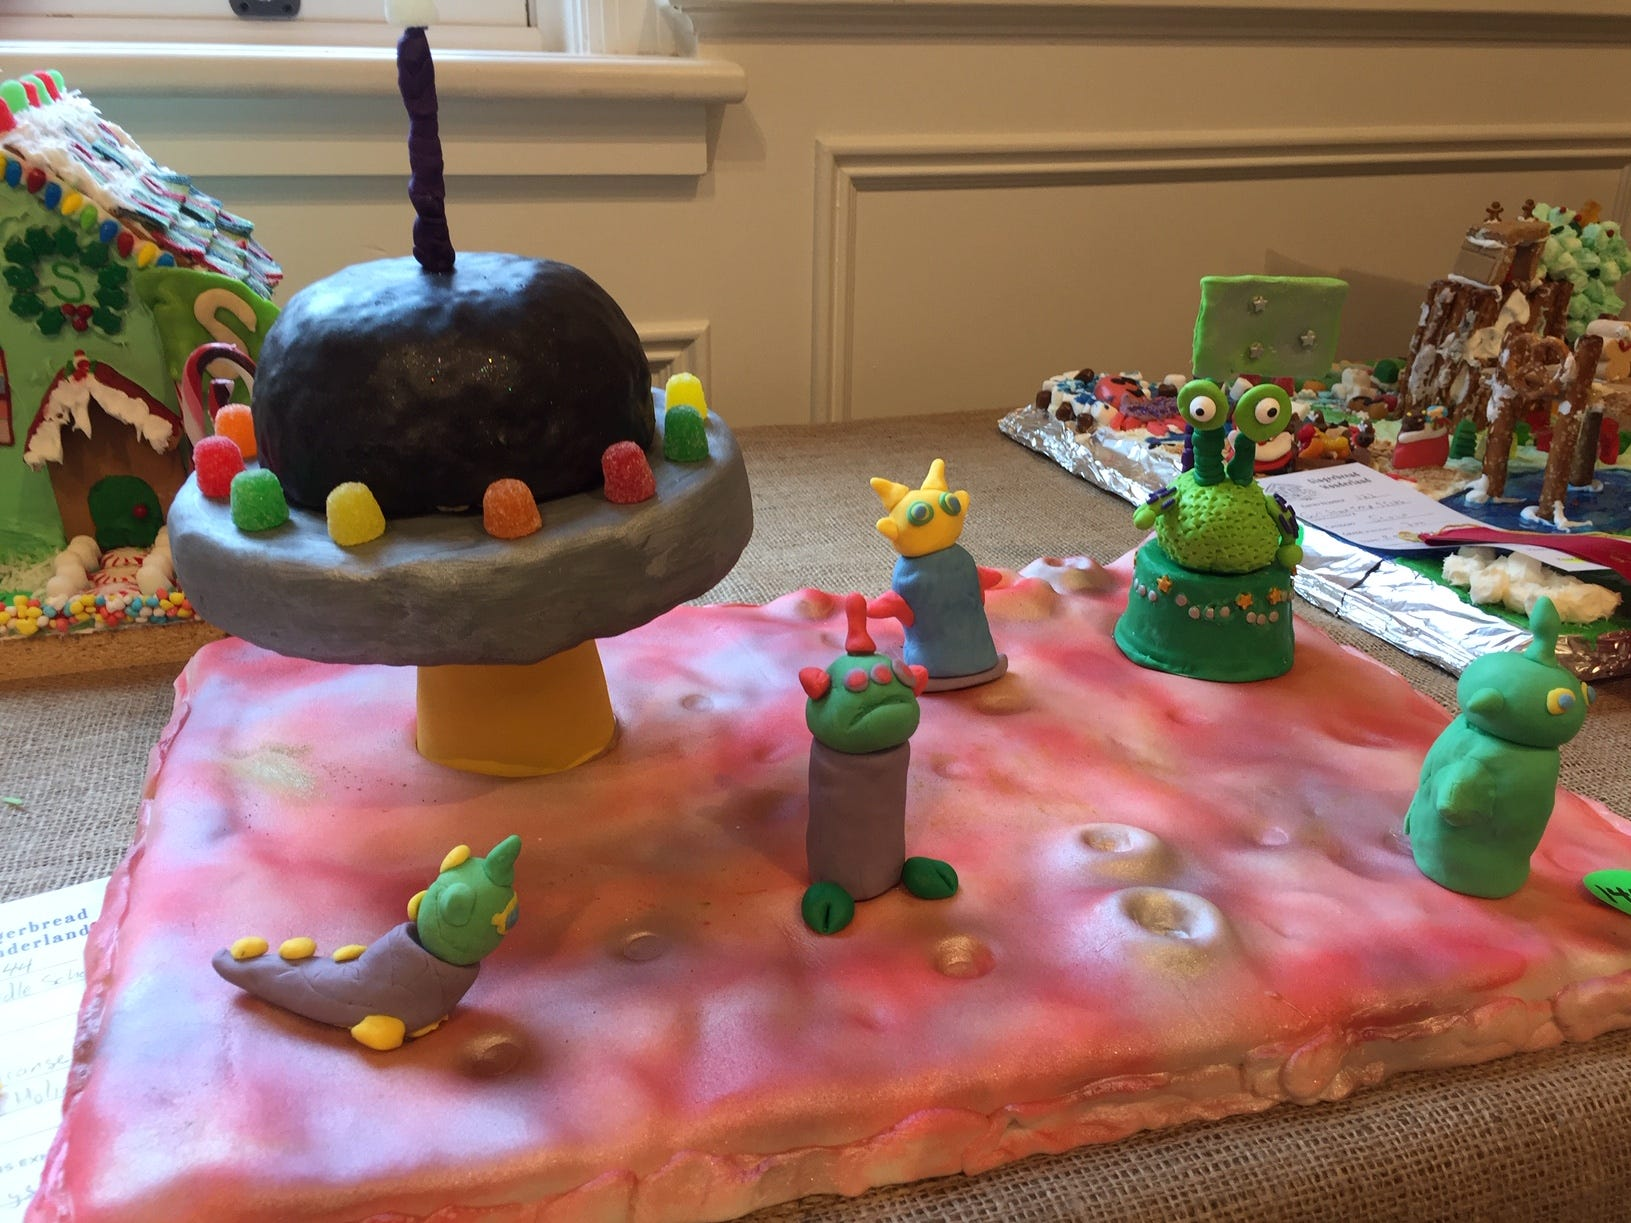 """Happy Holidays Earthlings!"" by South Orange Middle School at the 2018 Gingerbread Wonderland at the Frelinghuysen Arboretum. School category."